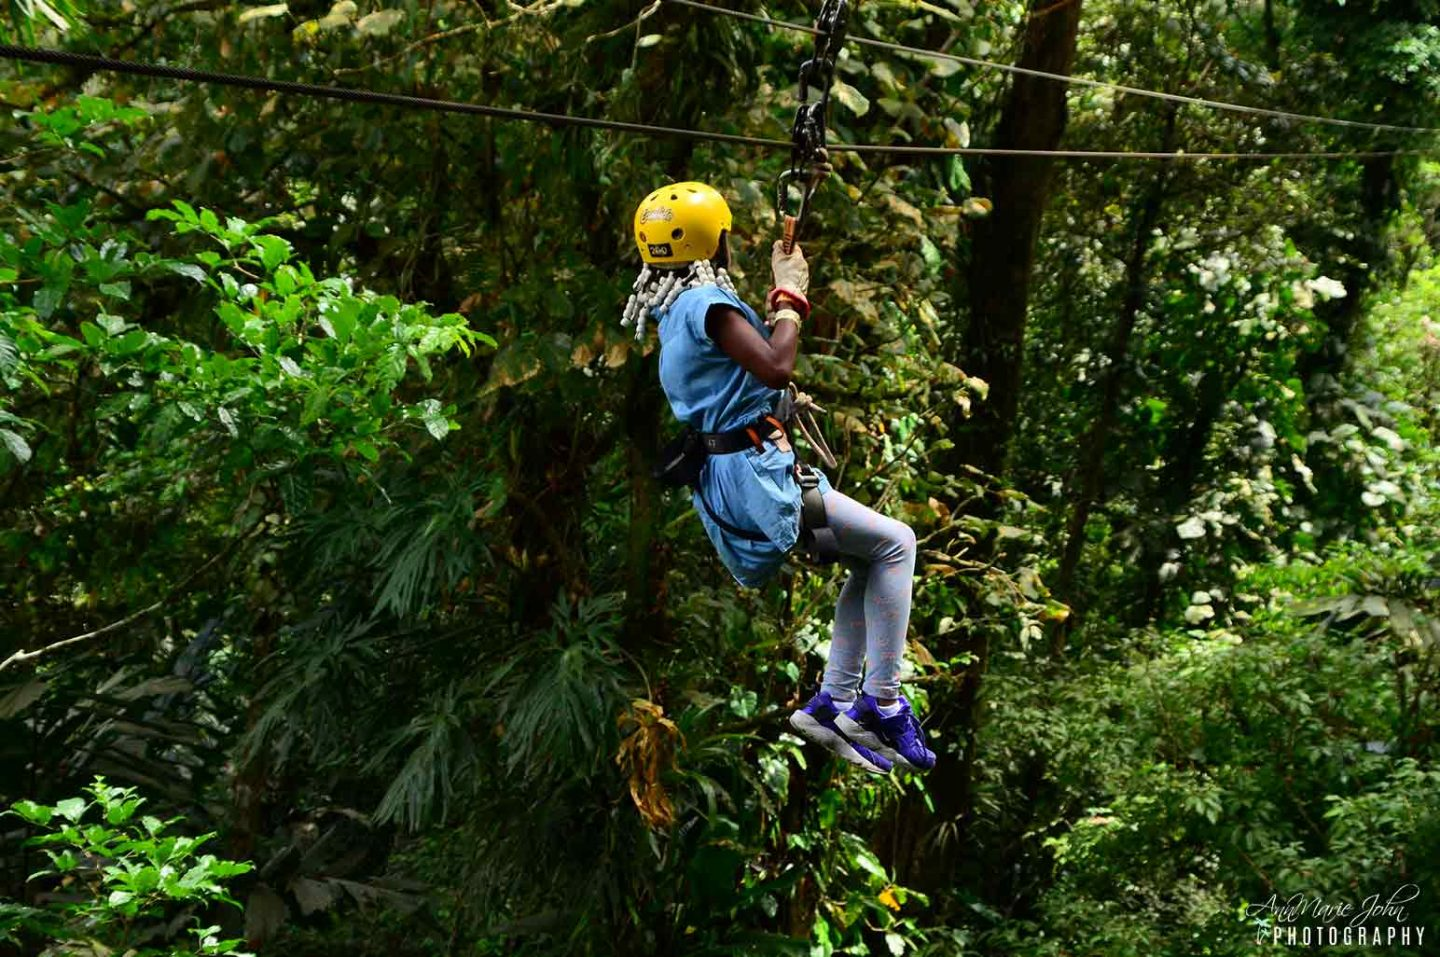 What You Should Know Before You Go Ziplining